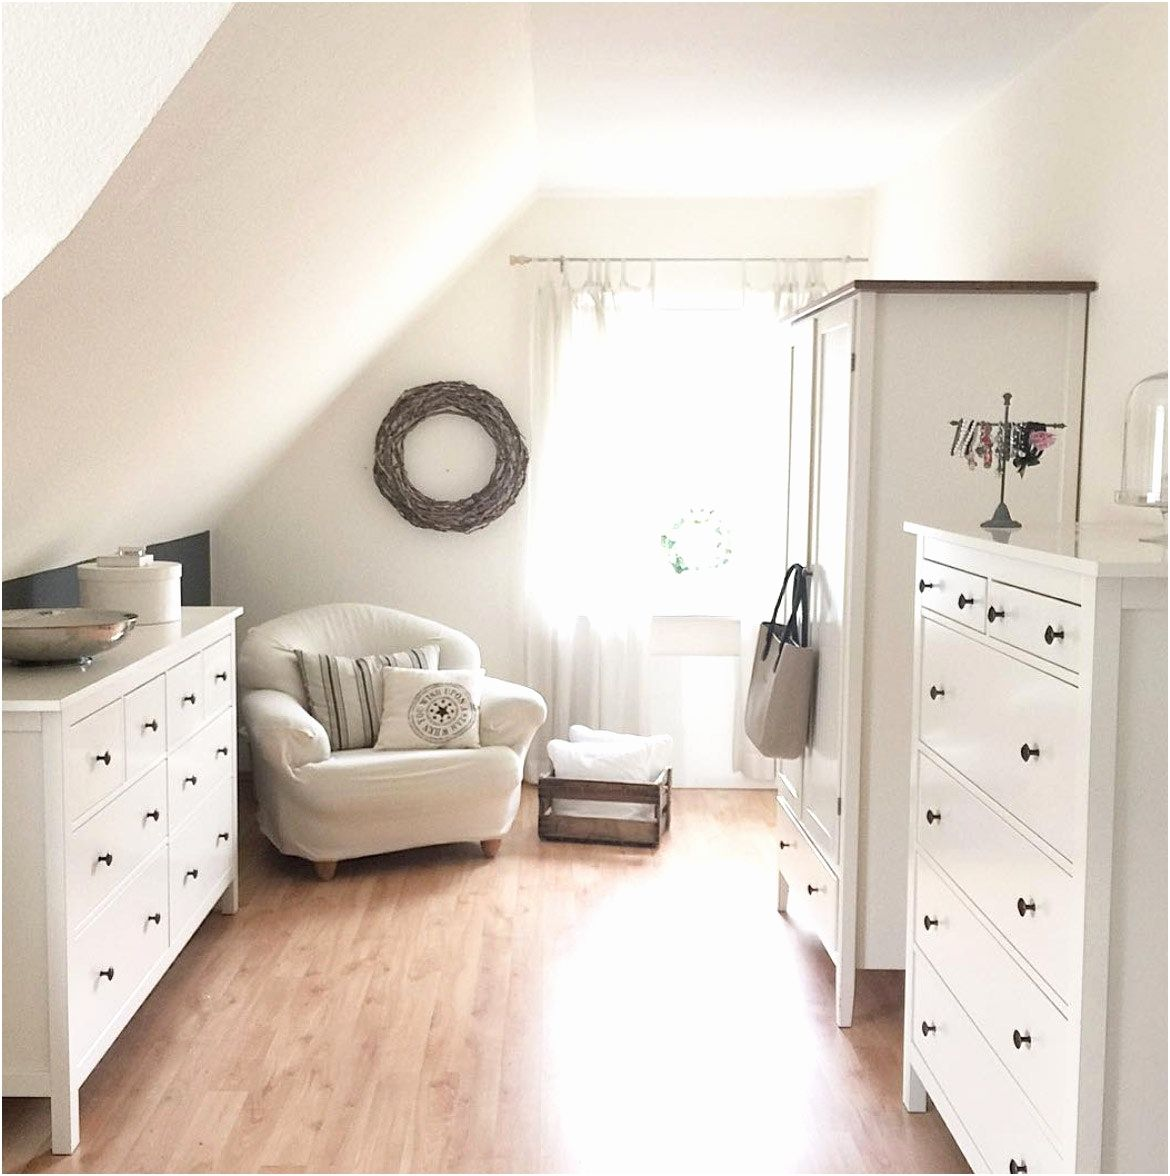 Schlafzimmer Einrichten Ideen Ikea Bedroom Design Home House